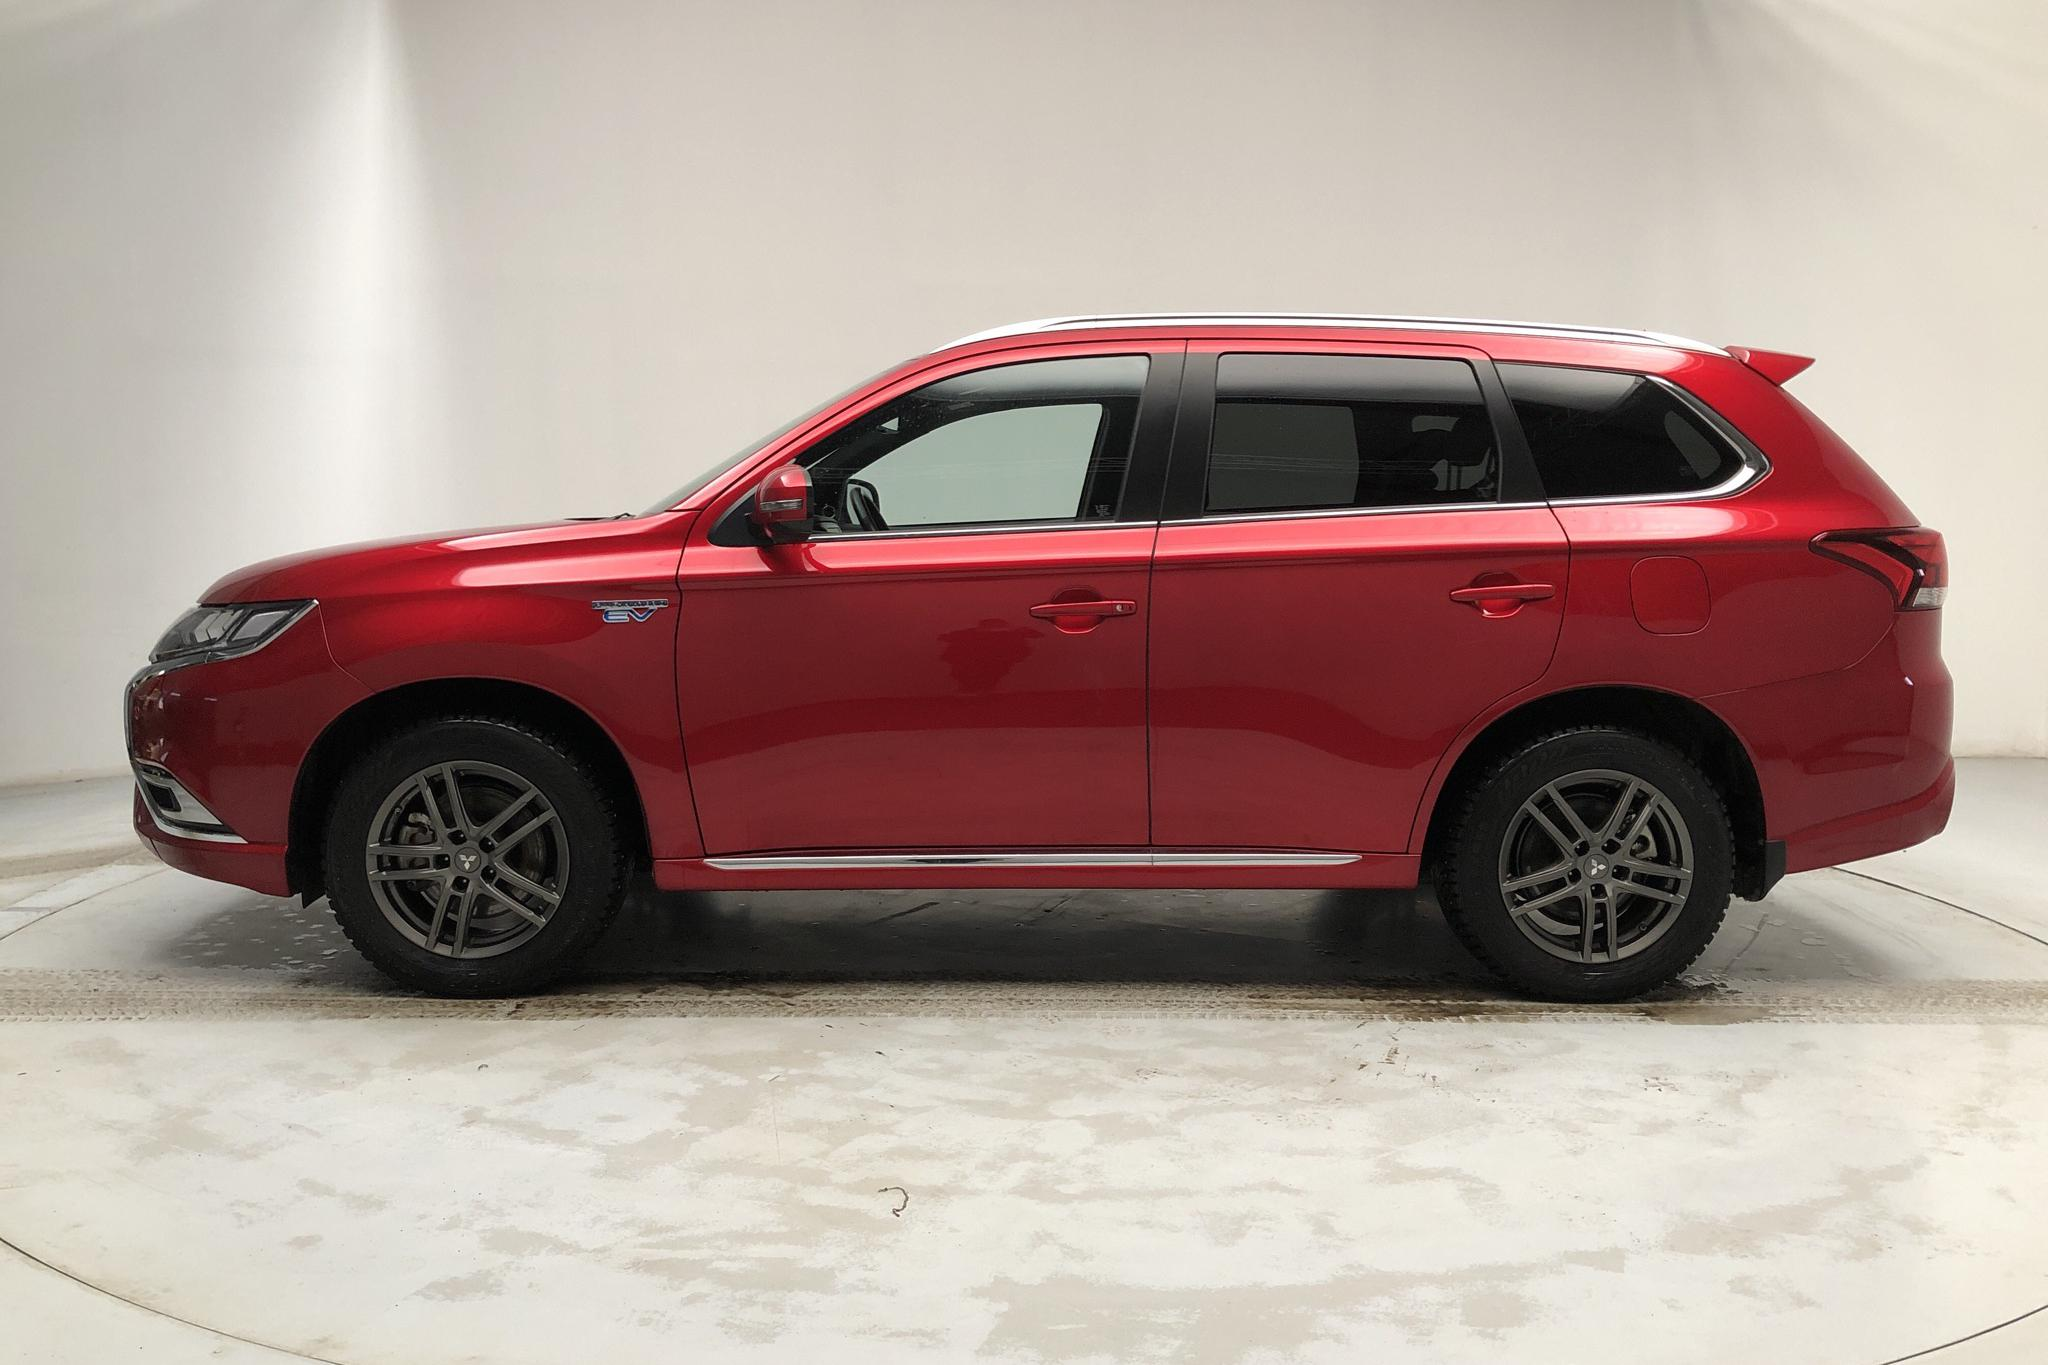 Mitsubishi Outlander 2.4 Plug-in Hybrid 4WD (136hk) - 24 990 km - Automatic - red - 2020